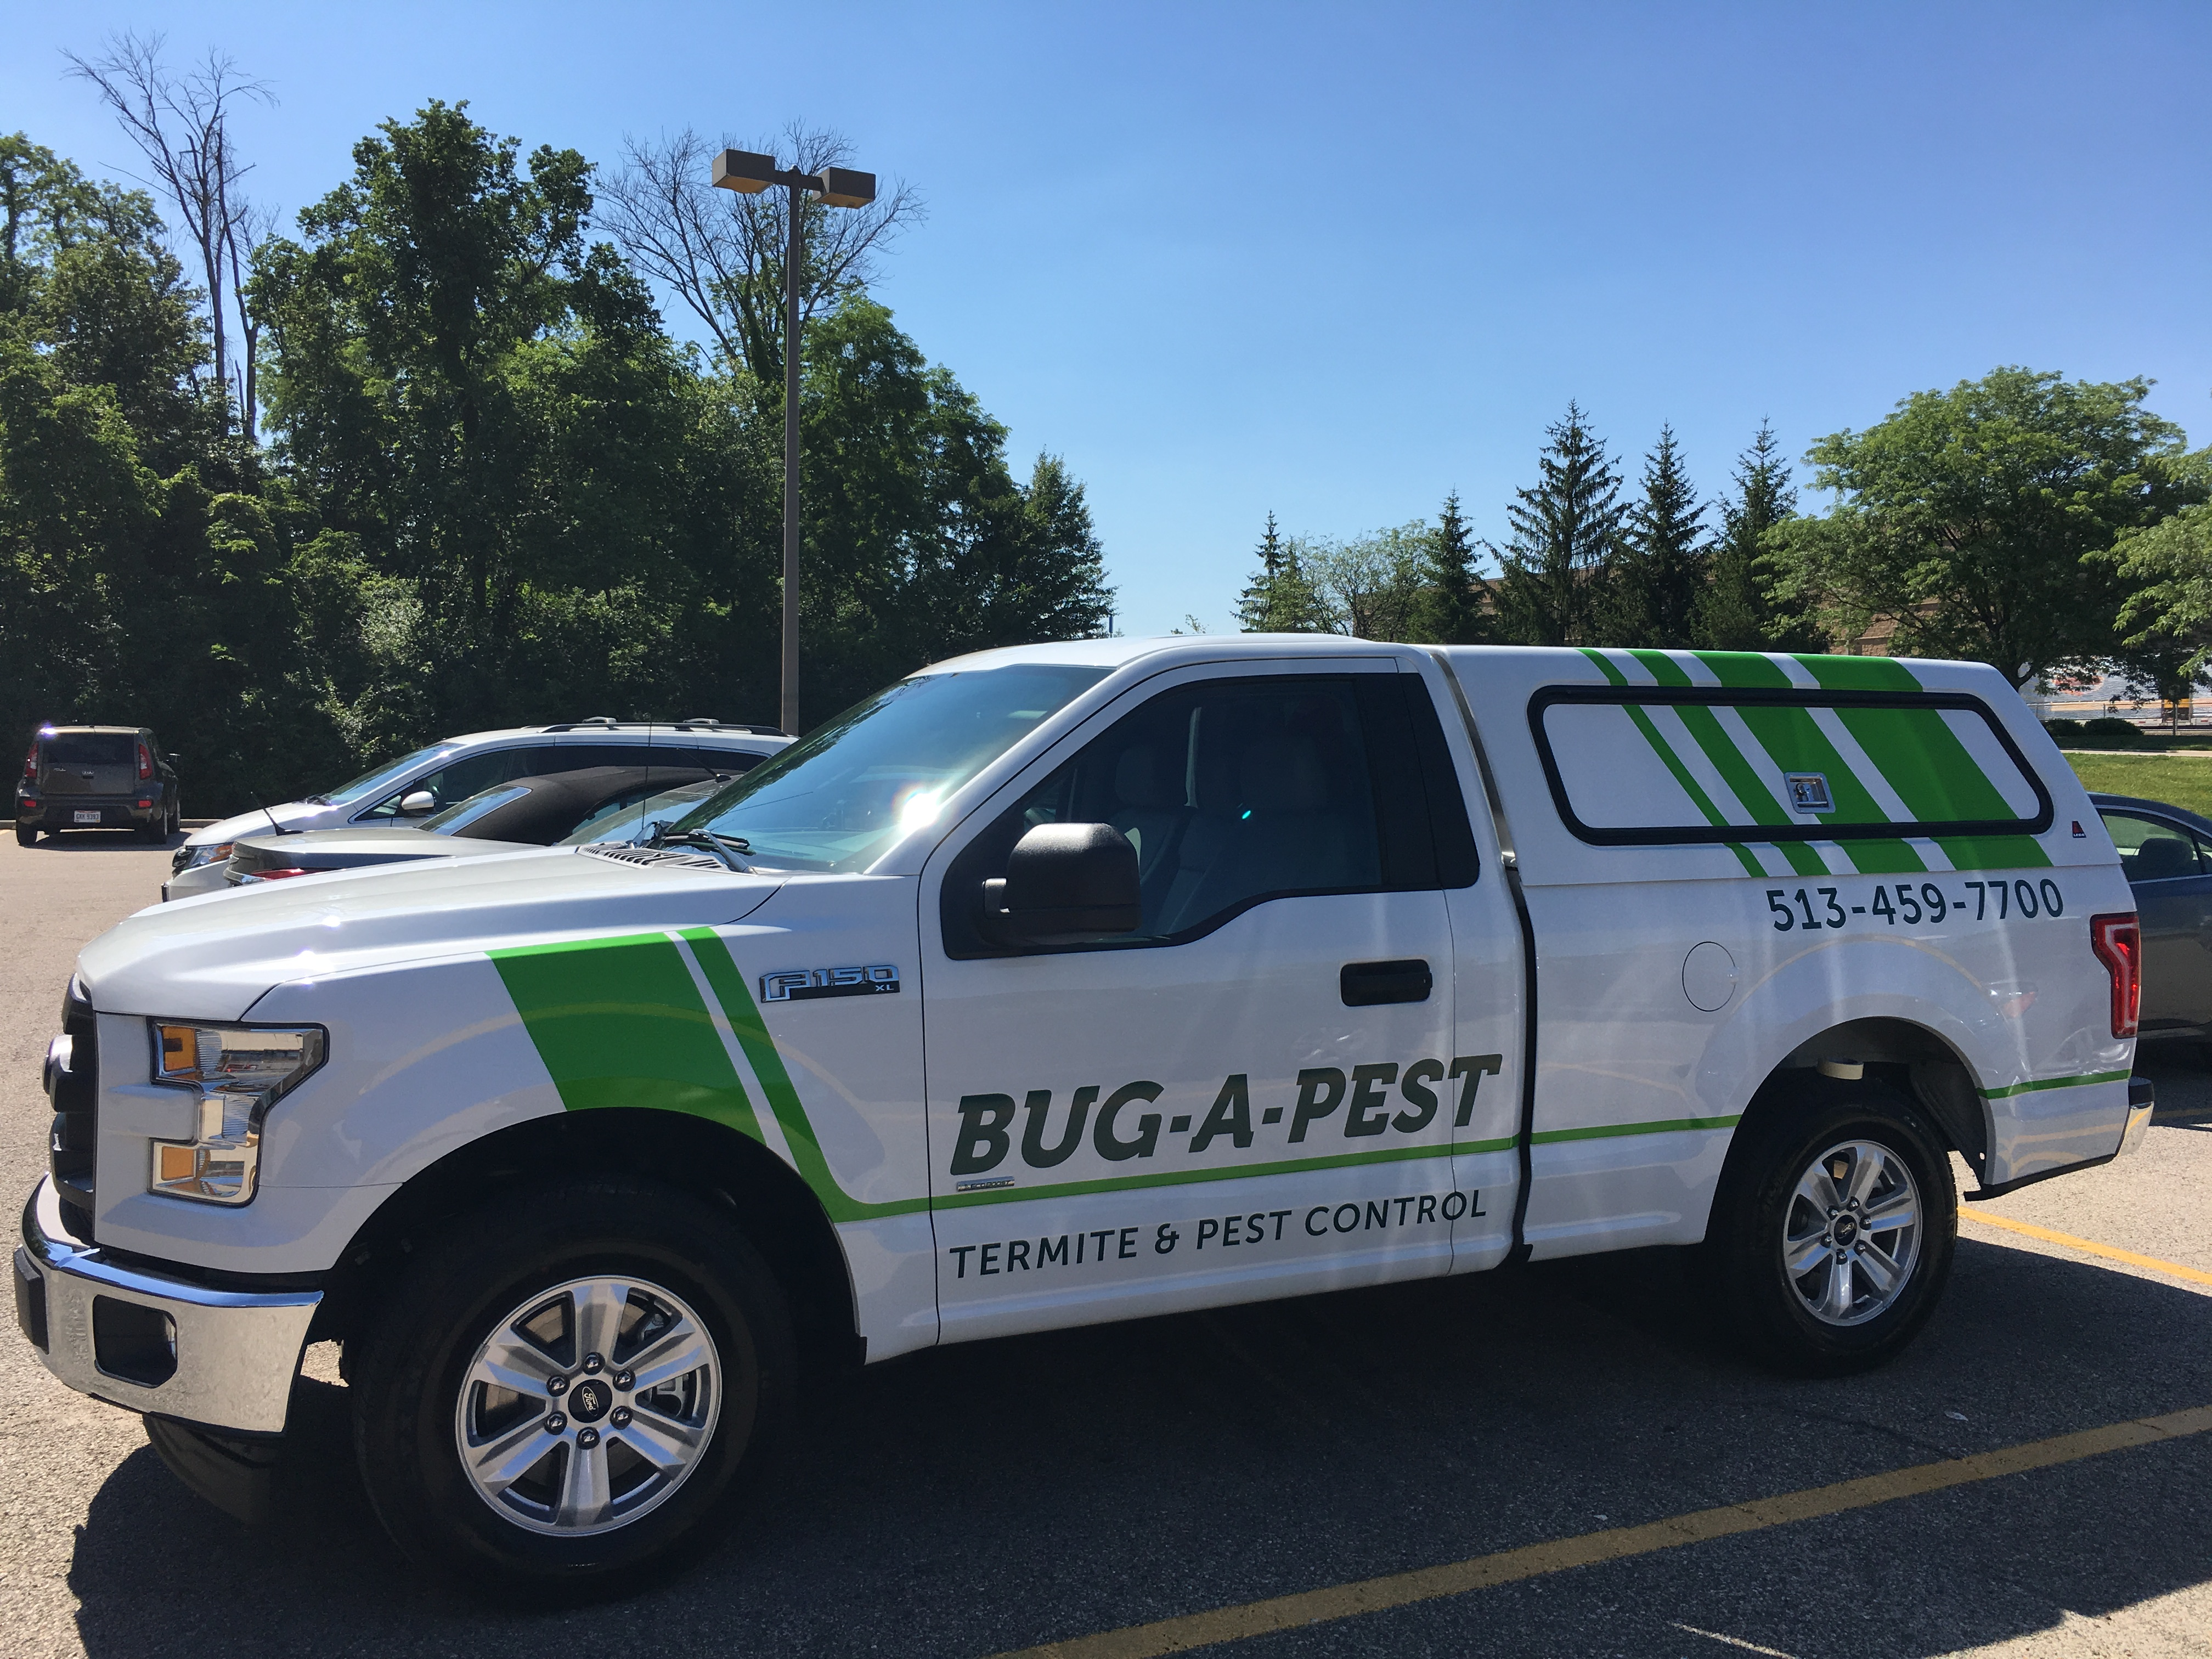 bug a pest truck with decal